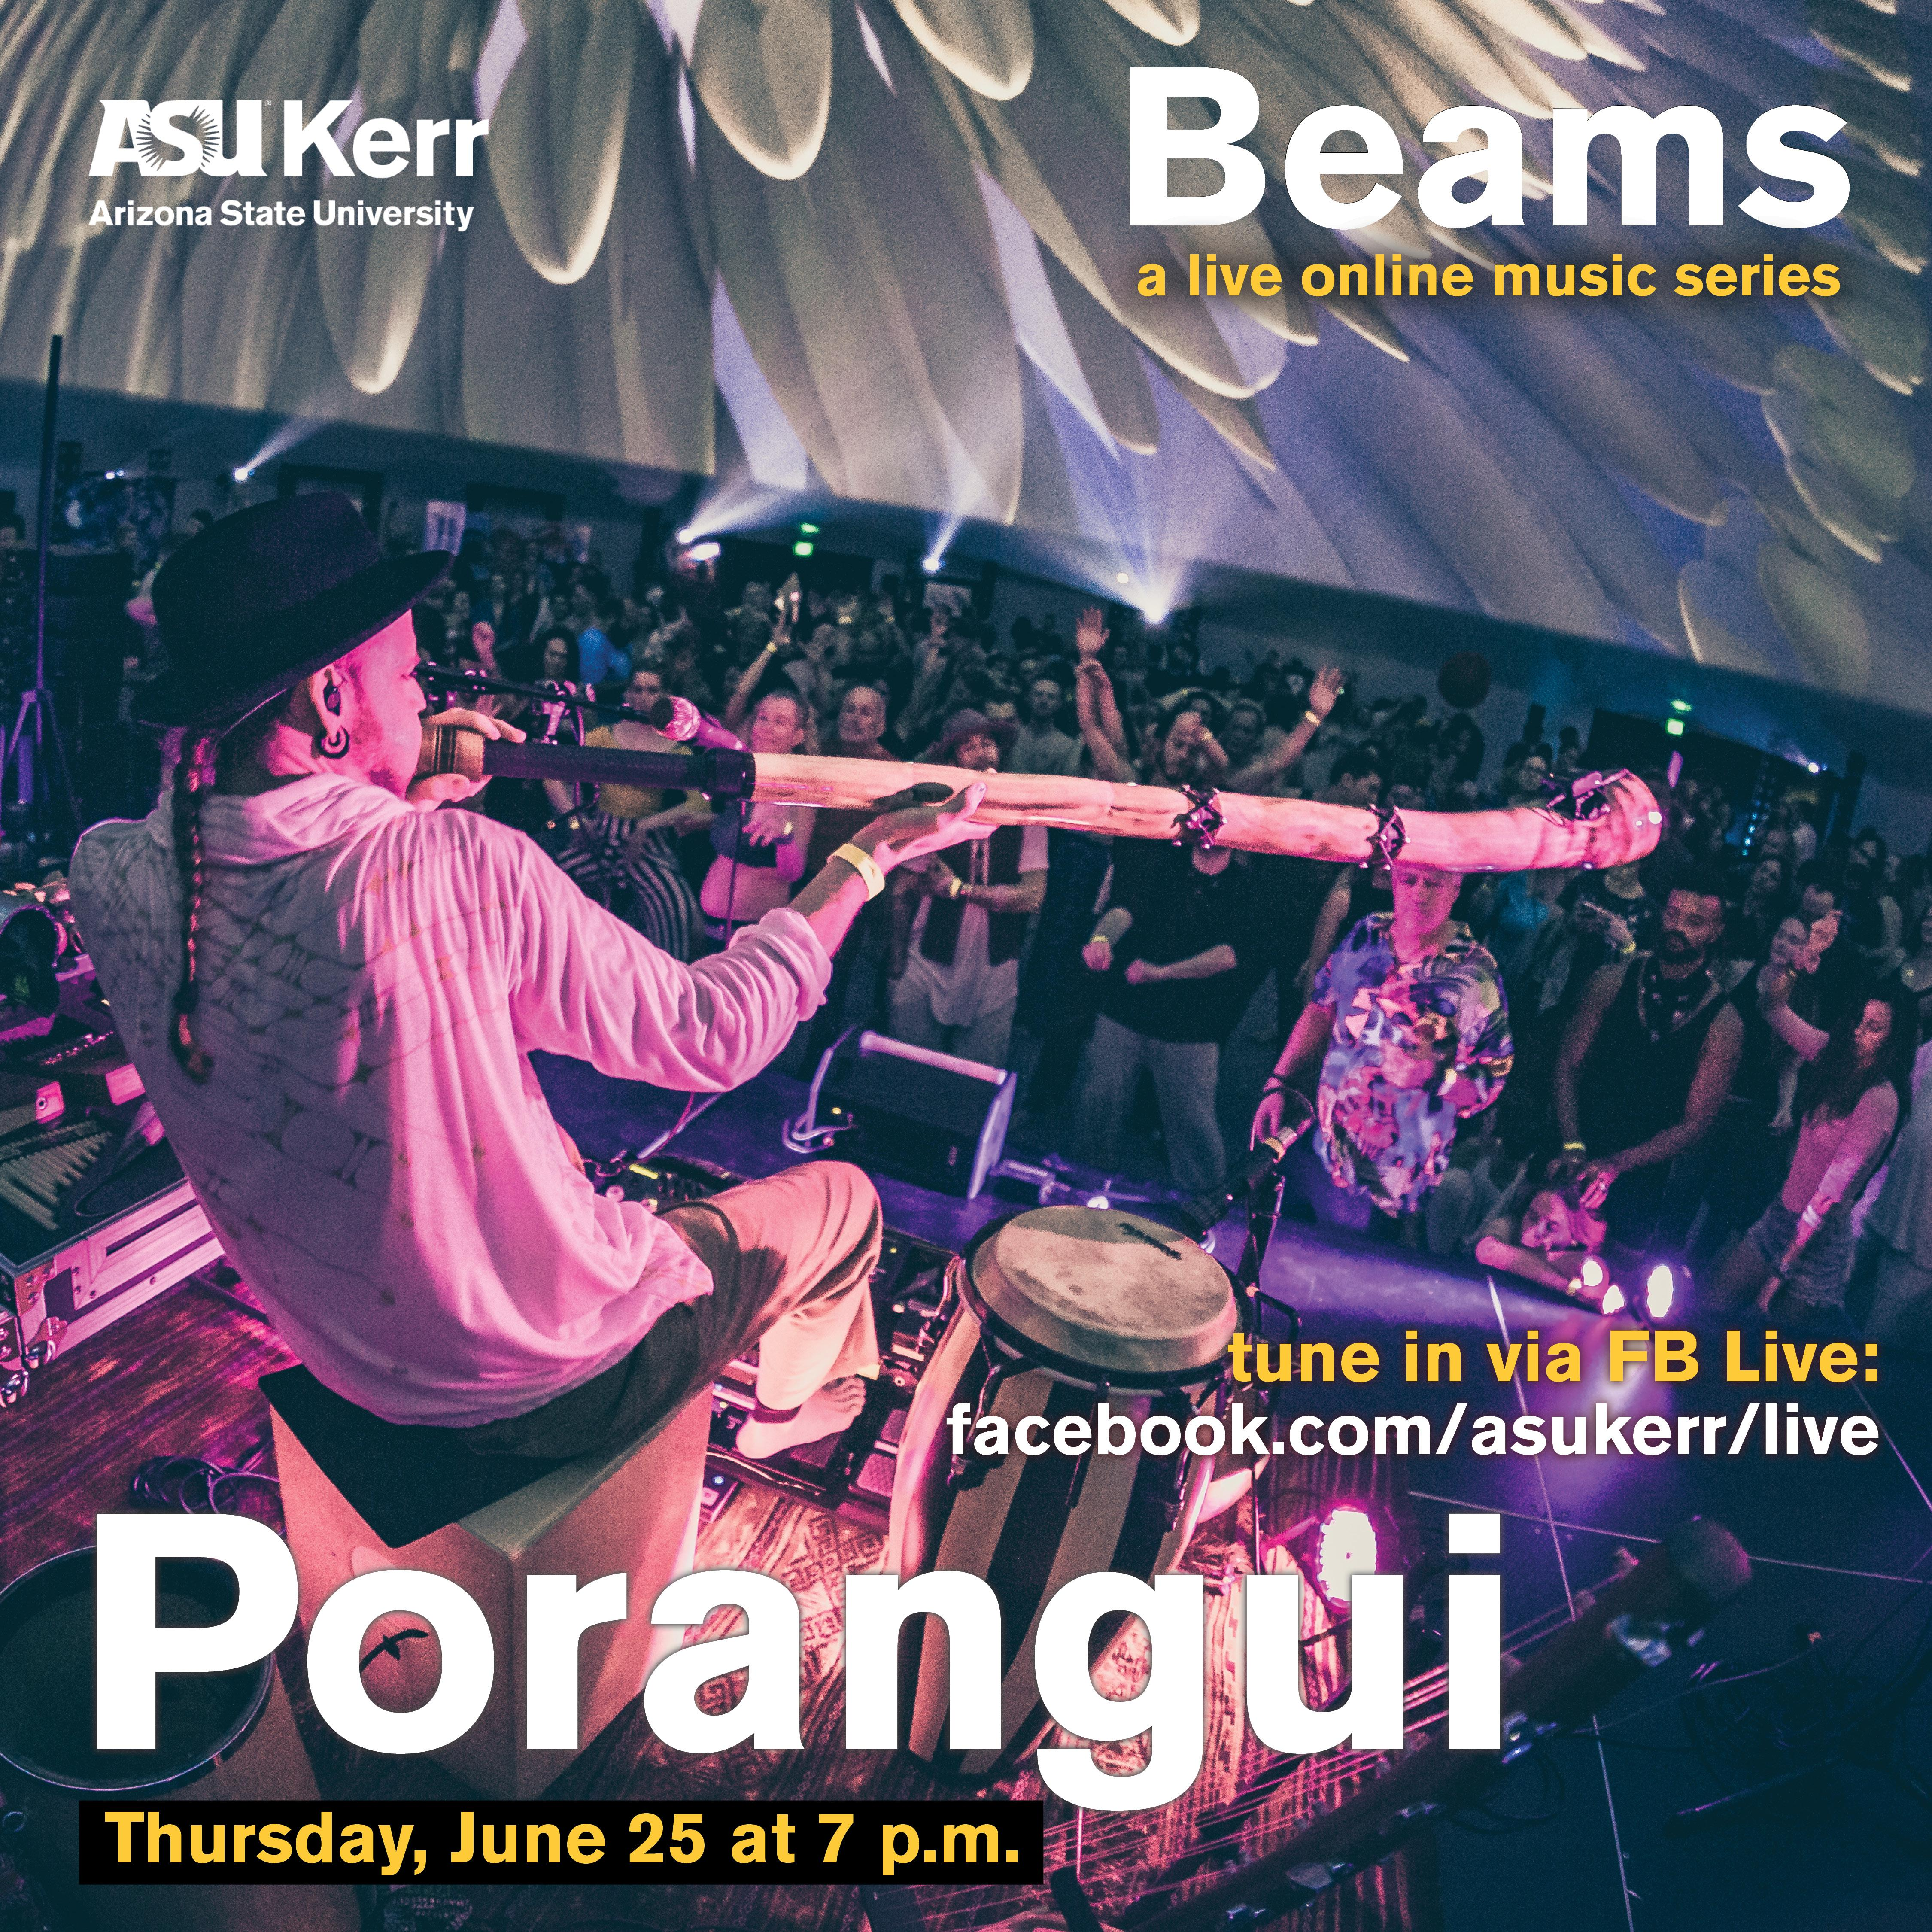 Porangui plays a digeridoo while seated among many different types of drums from around the world in front of a large indoor festival crowd